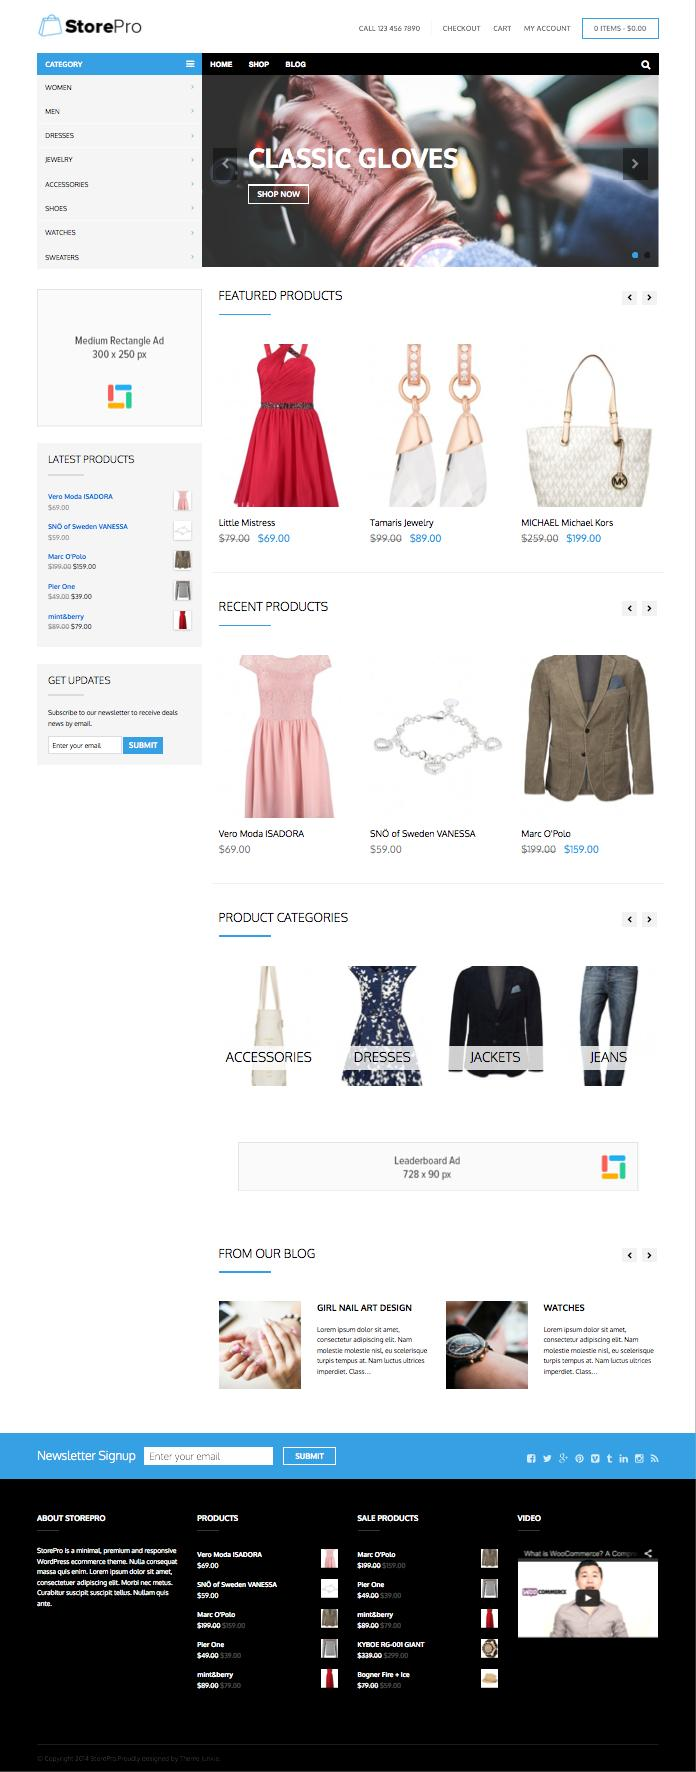 StorePro WordPress eCommerce Product Theme